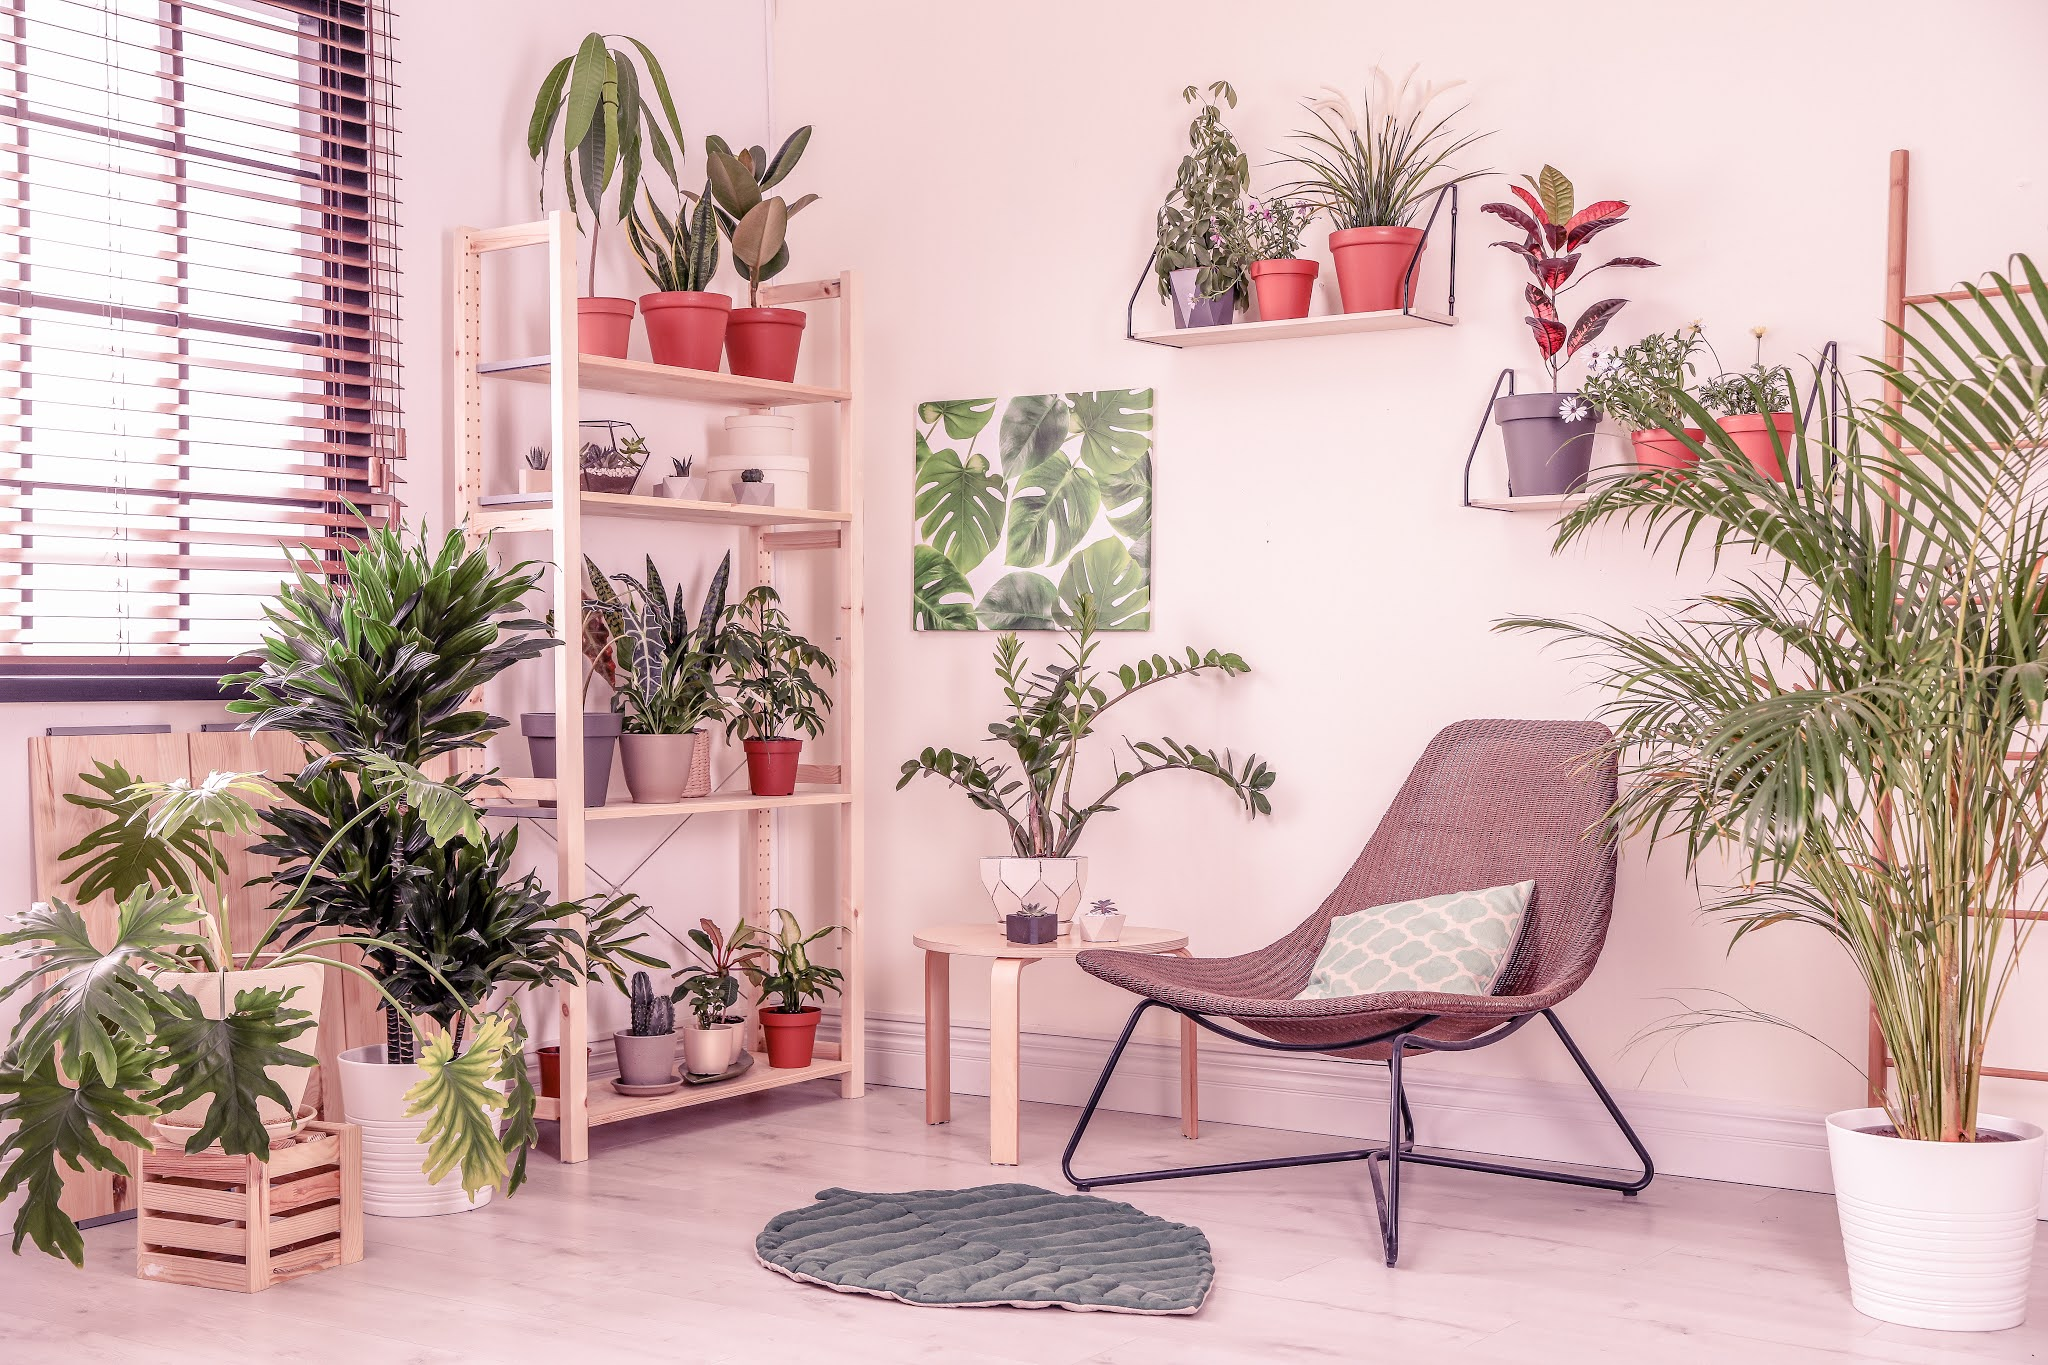 Stylish living room interior with home plants and lounge chair